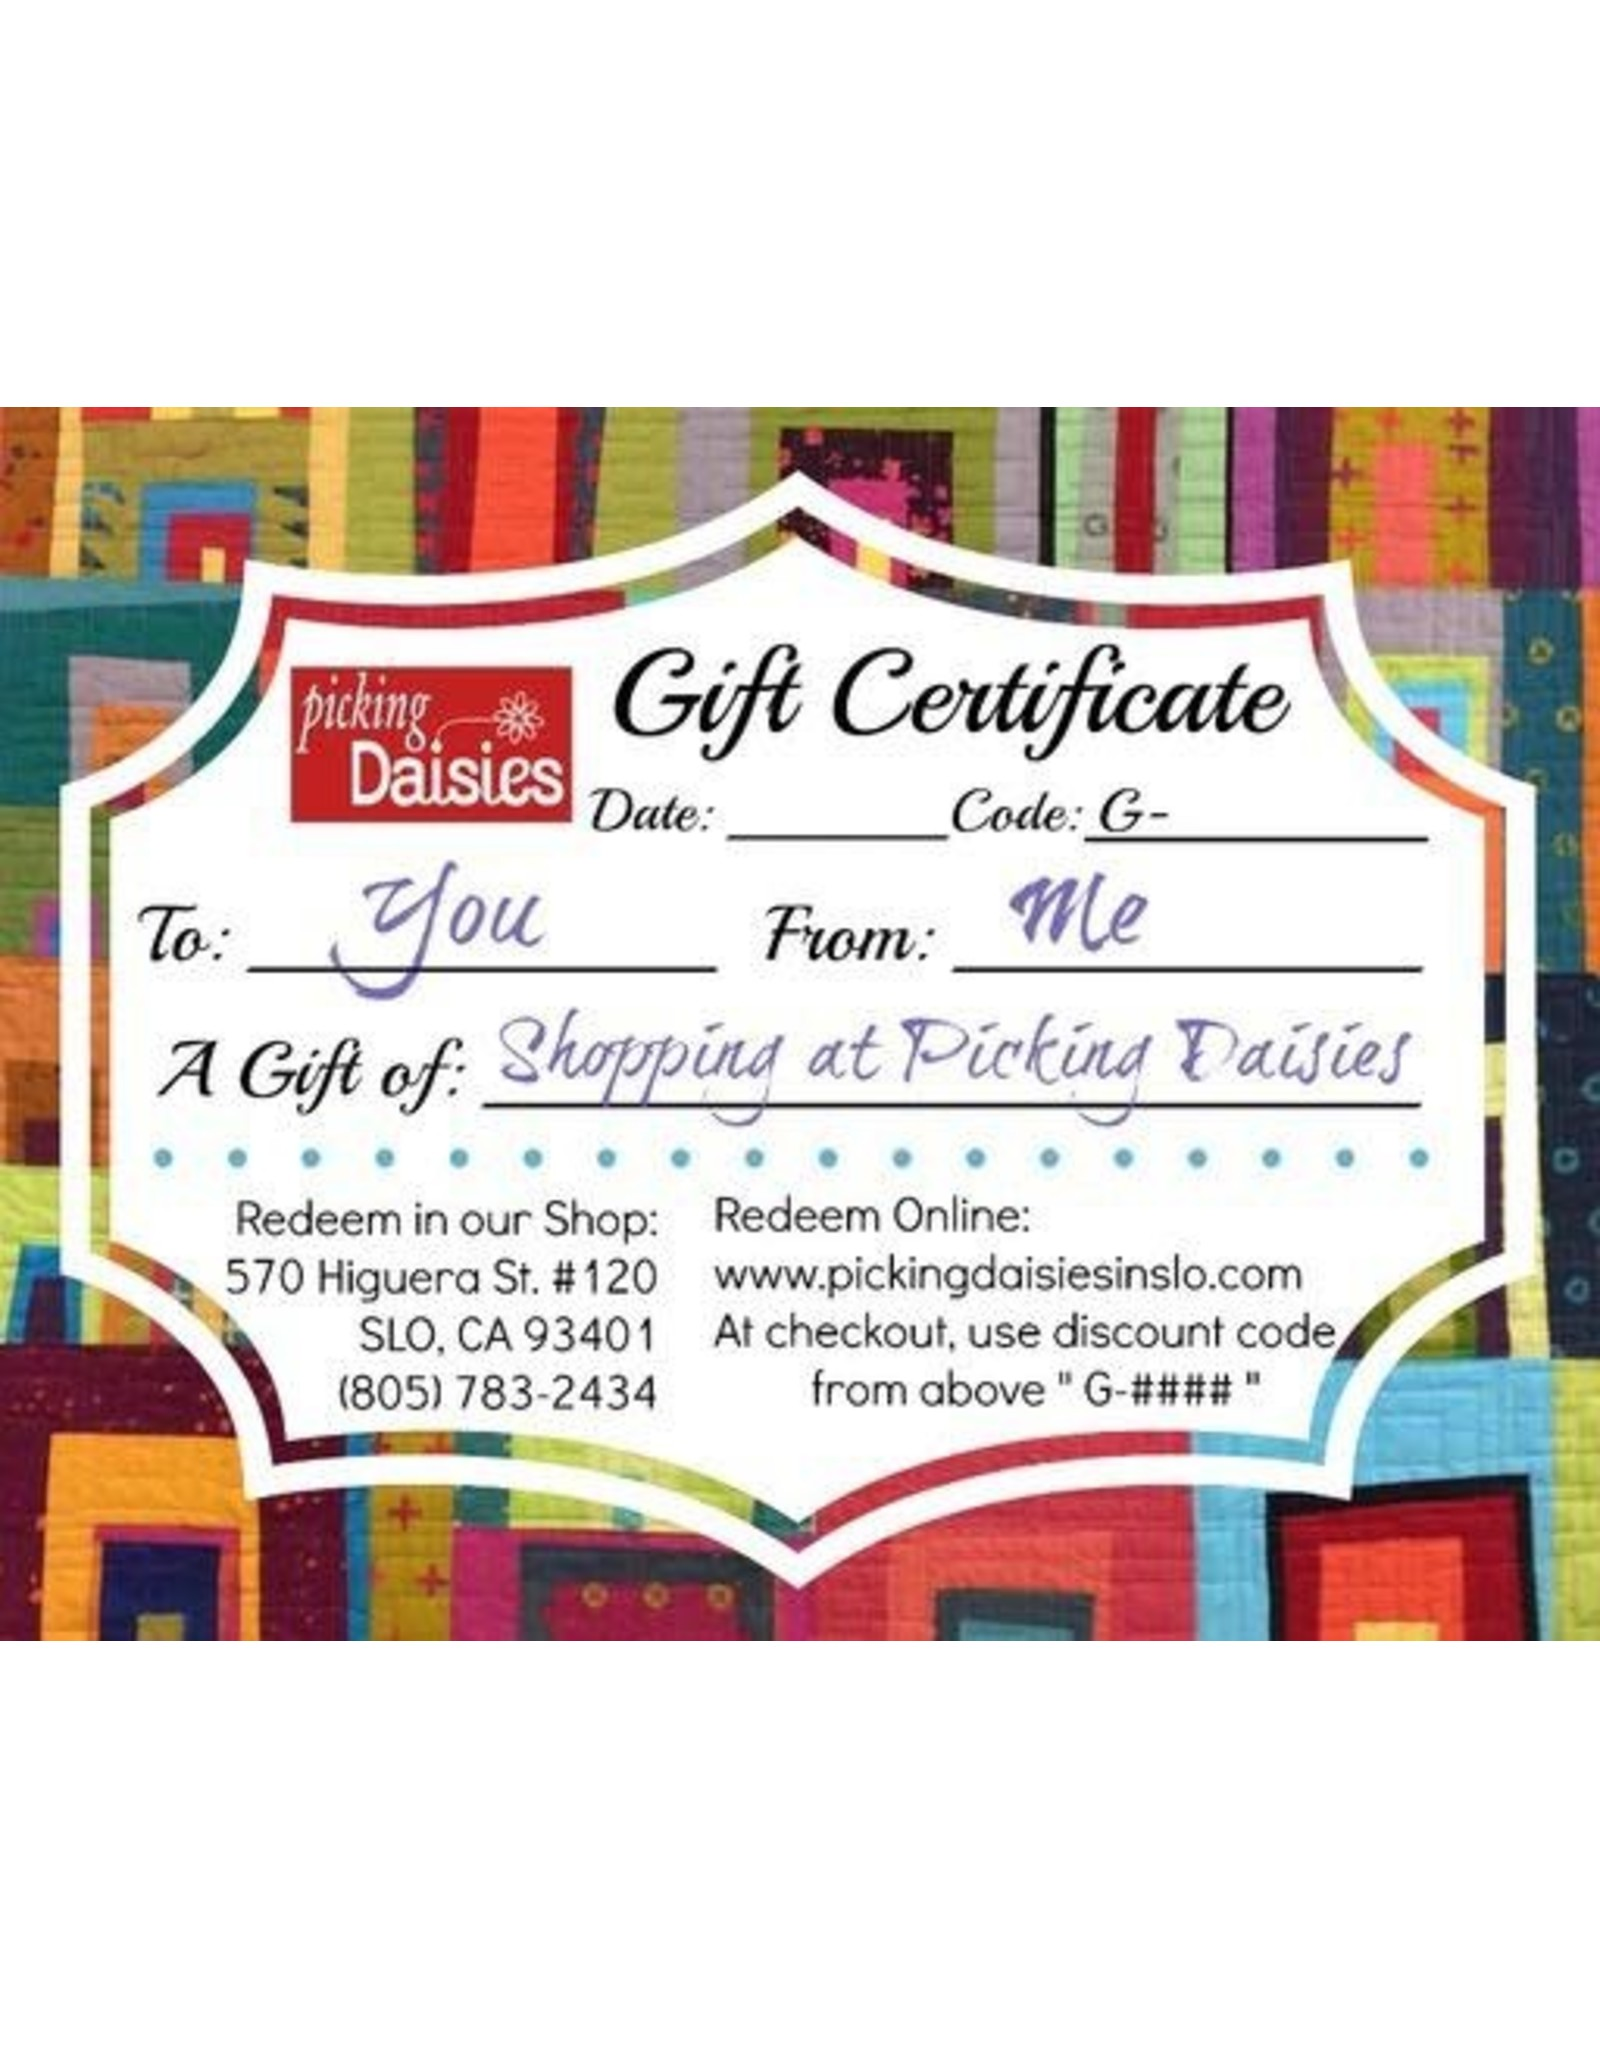 PD Gift Certificate - $75